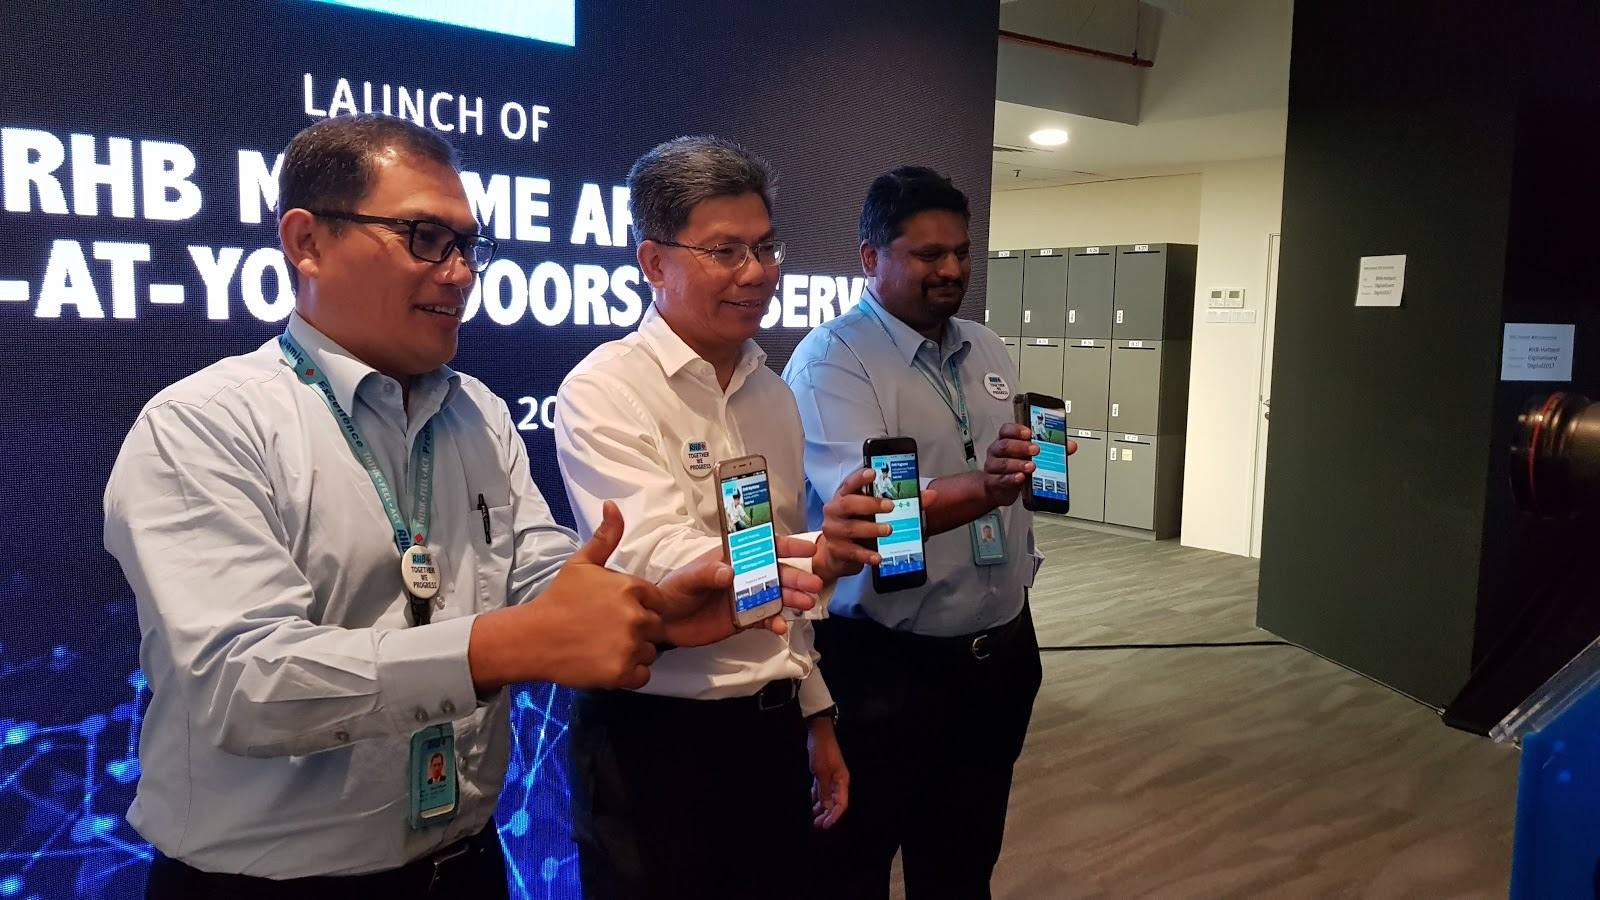 Rhb bank introduces new banking app 2